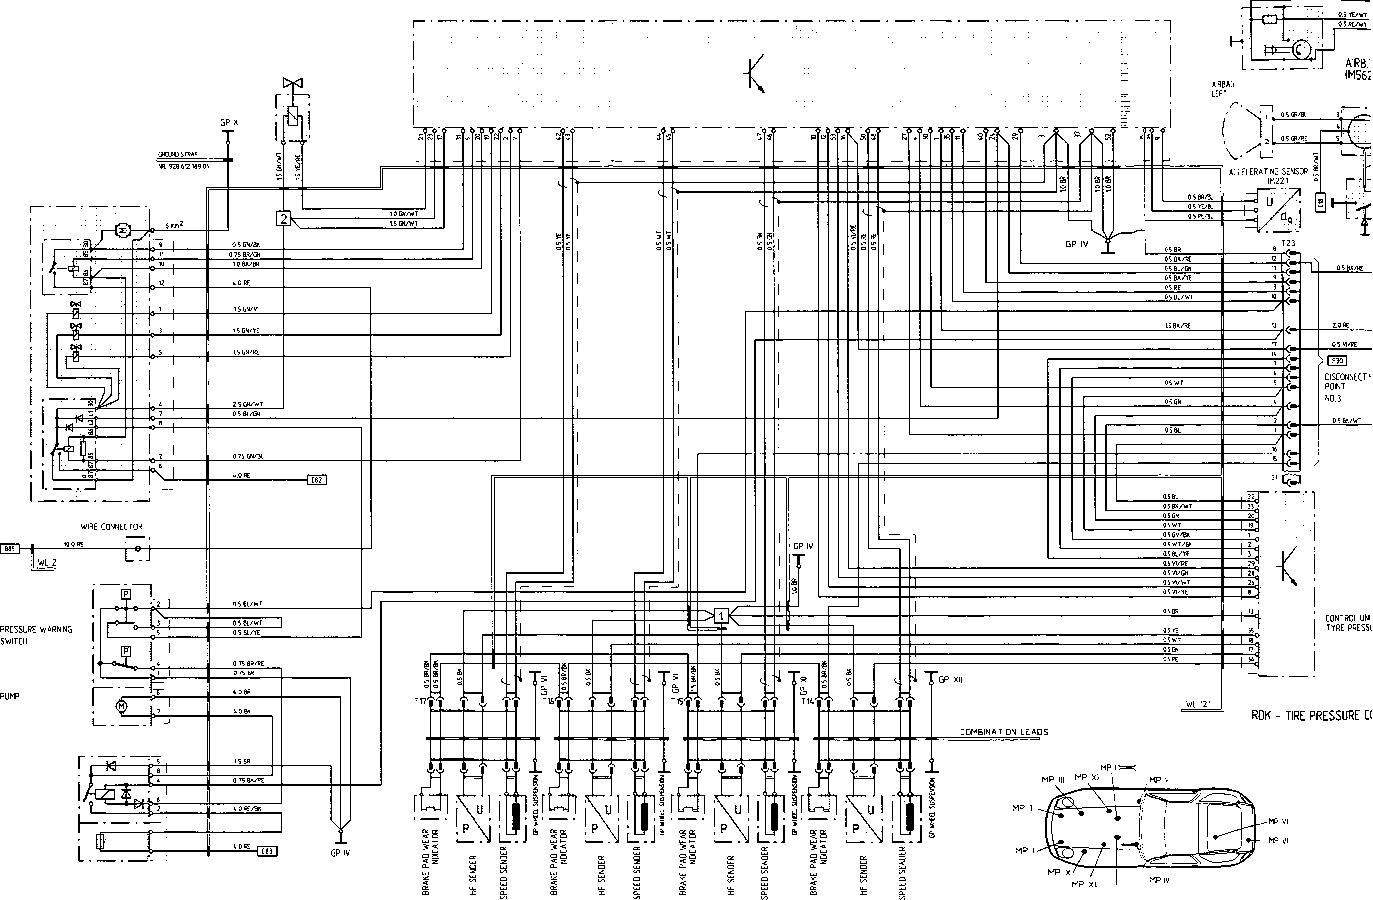 hight resolution of porsche 964 engine wiring diagram wiring diagram centreporsche 964 dme wiring diagram wiring diagram metaporsche 964